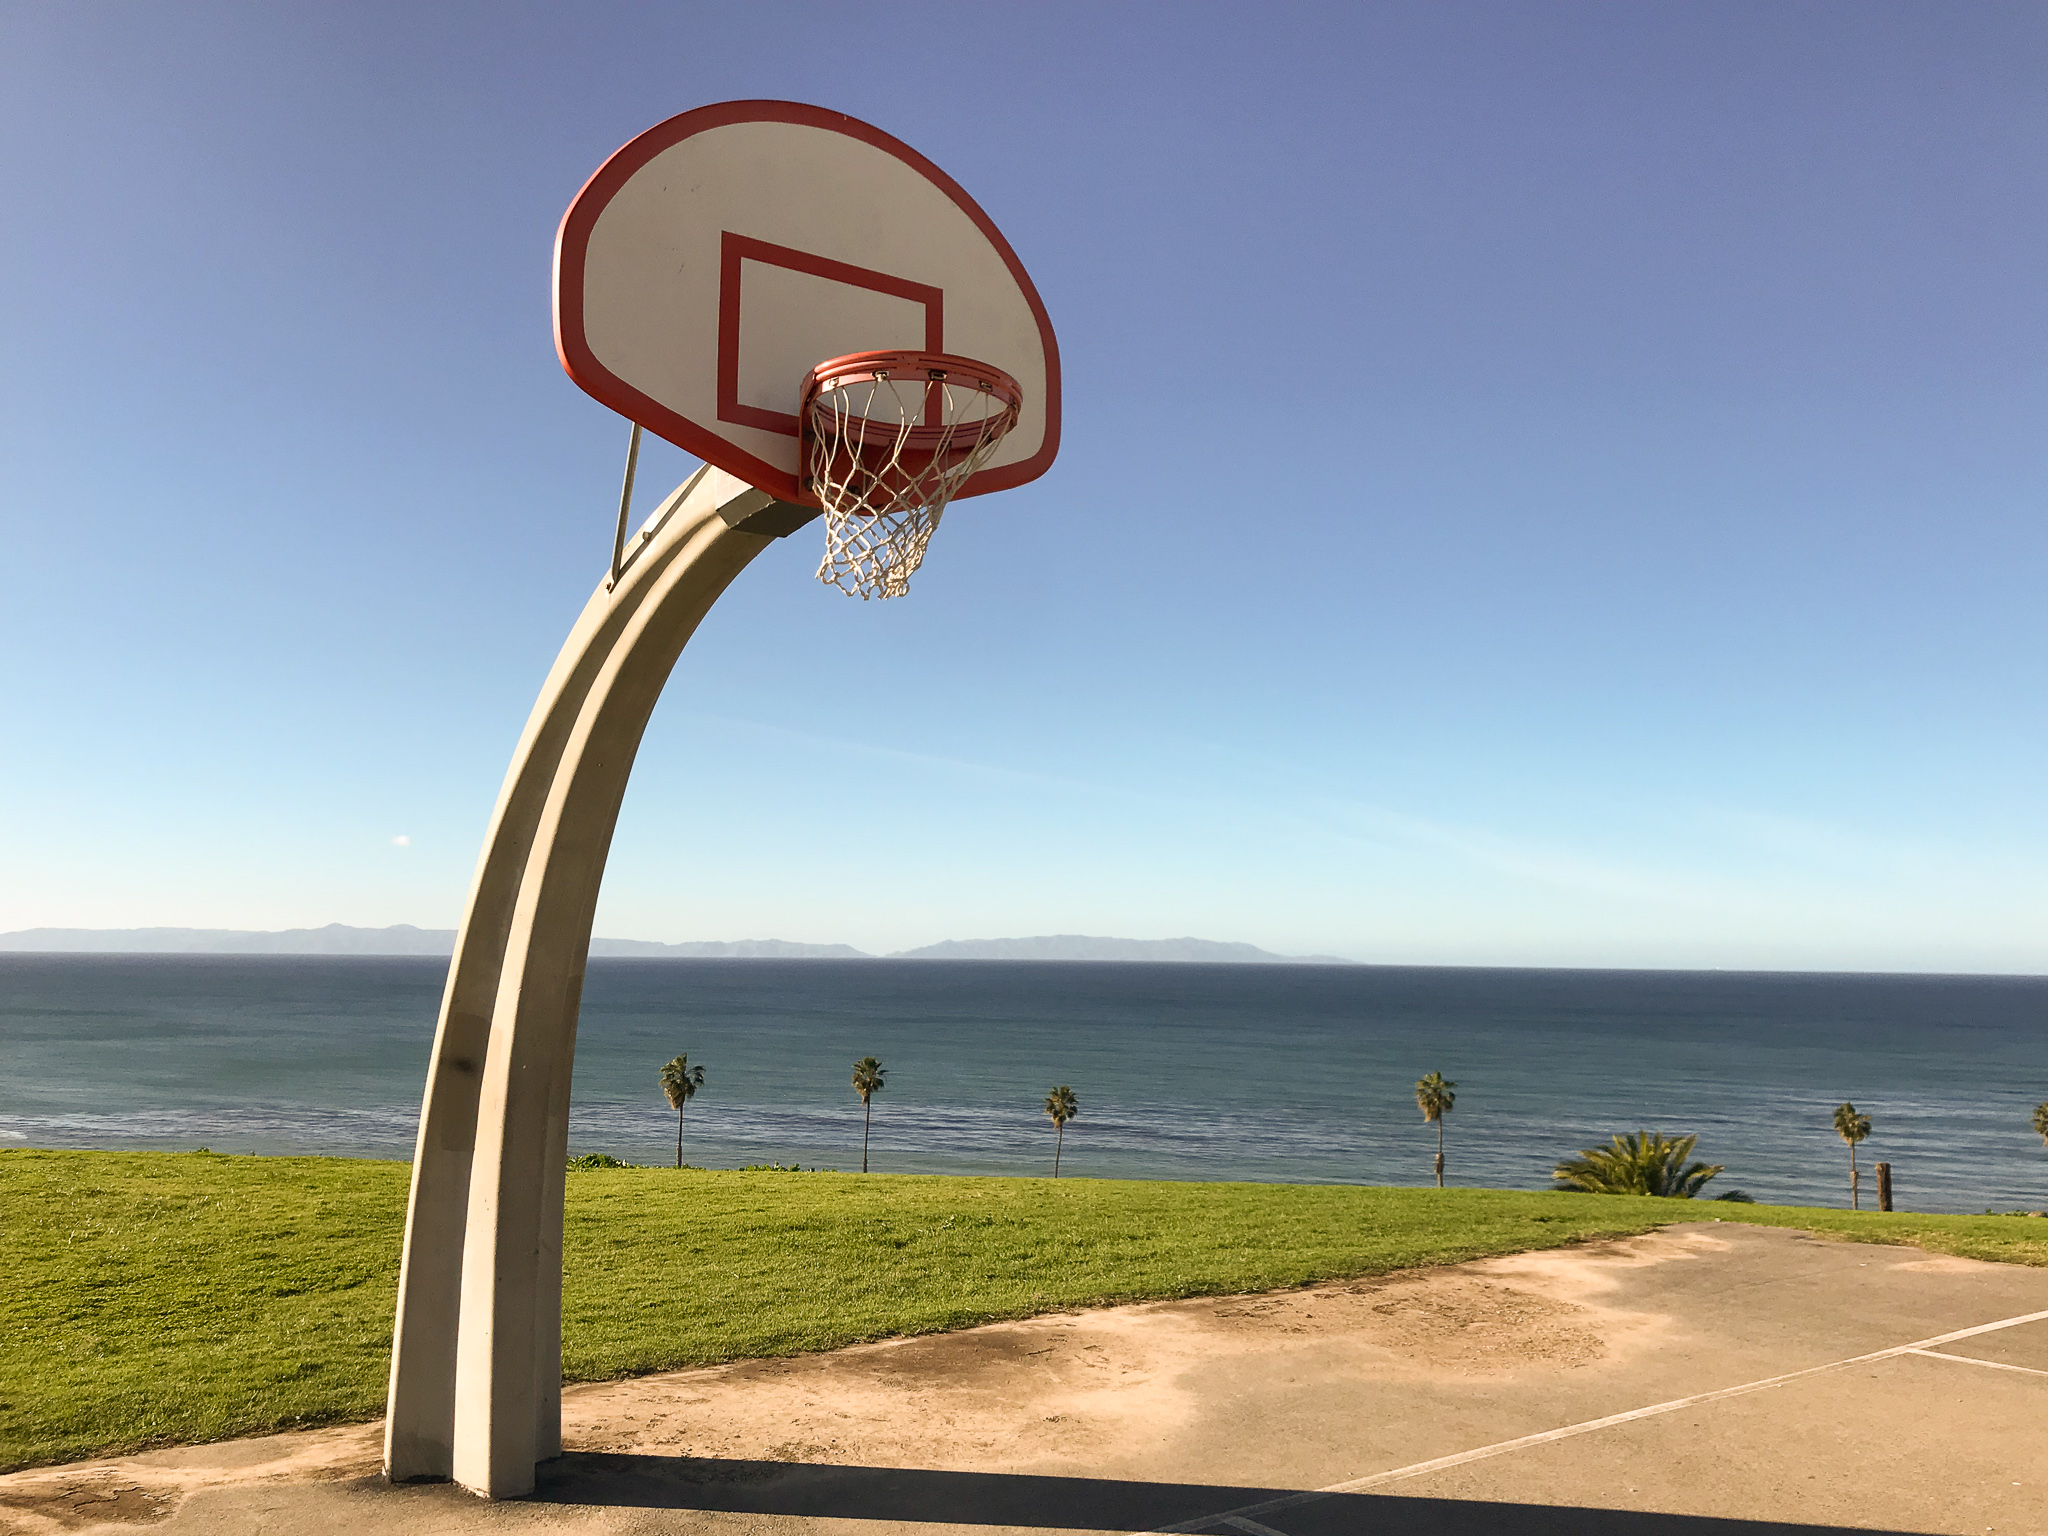 Angels Gate Park is one of the most iconic basketball courts